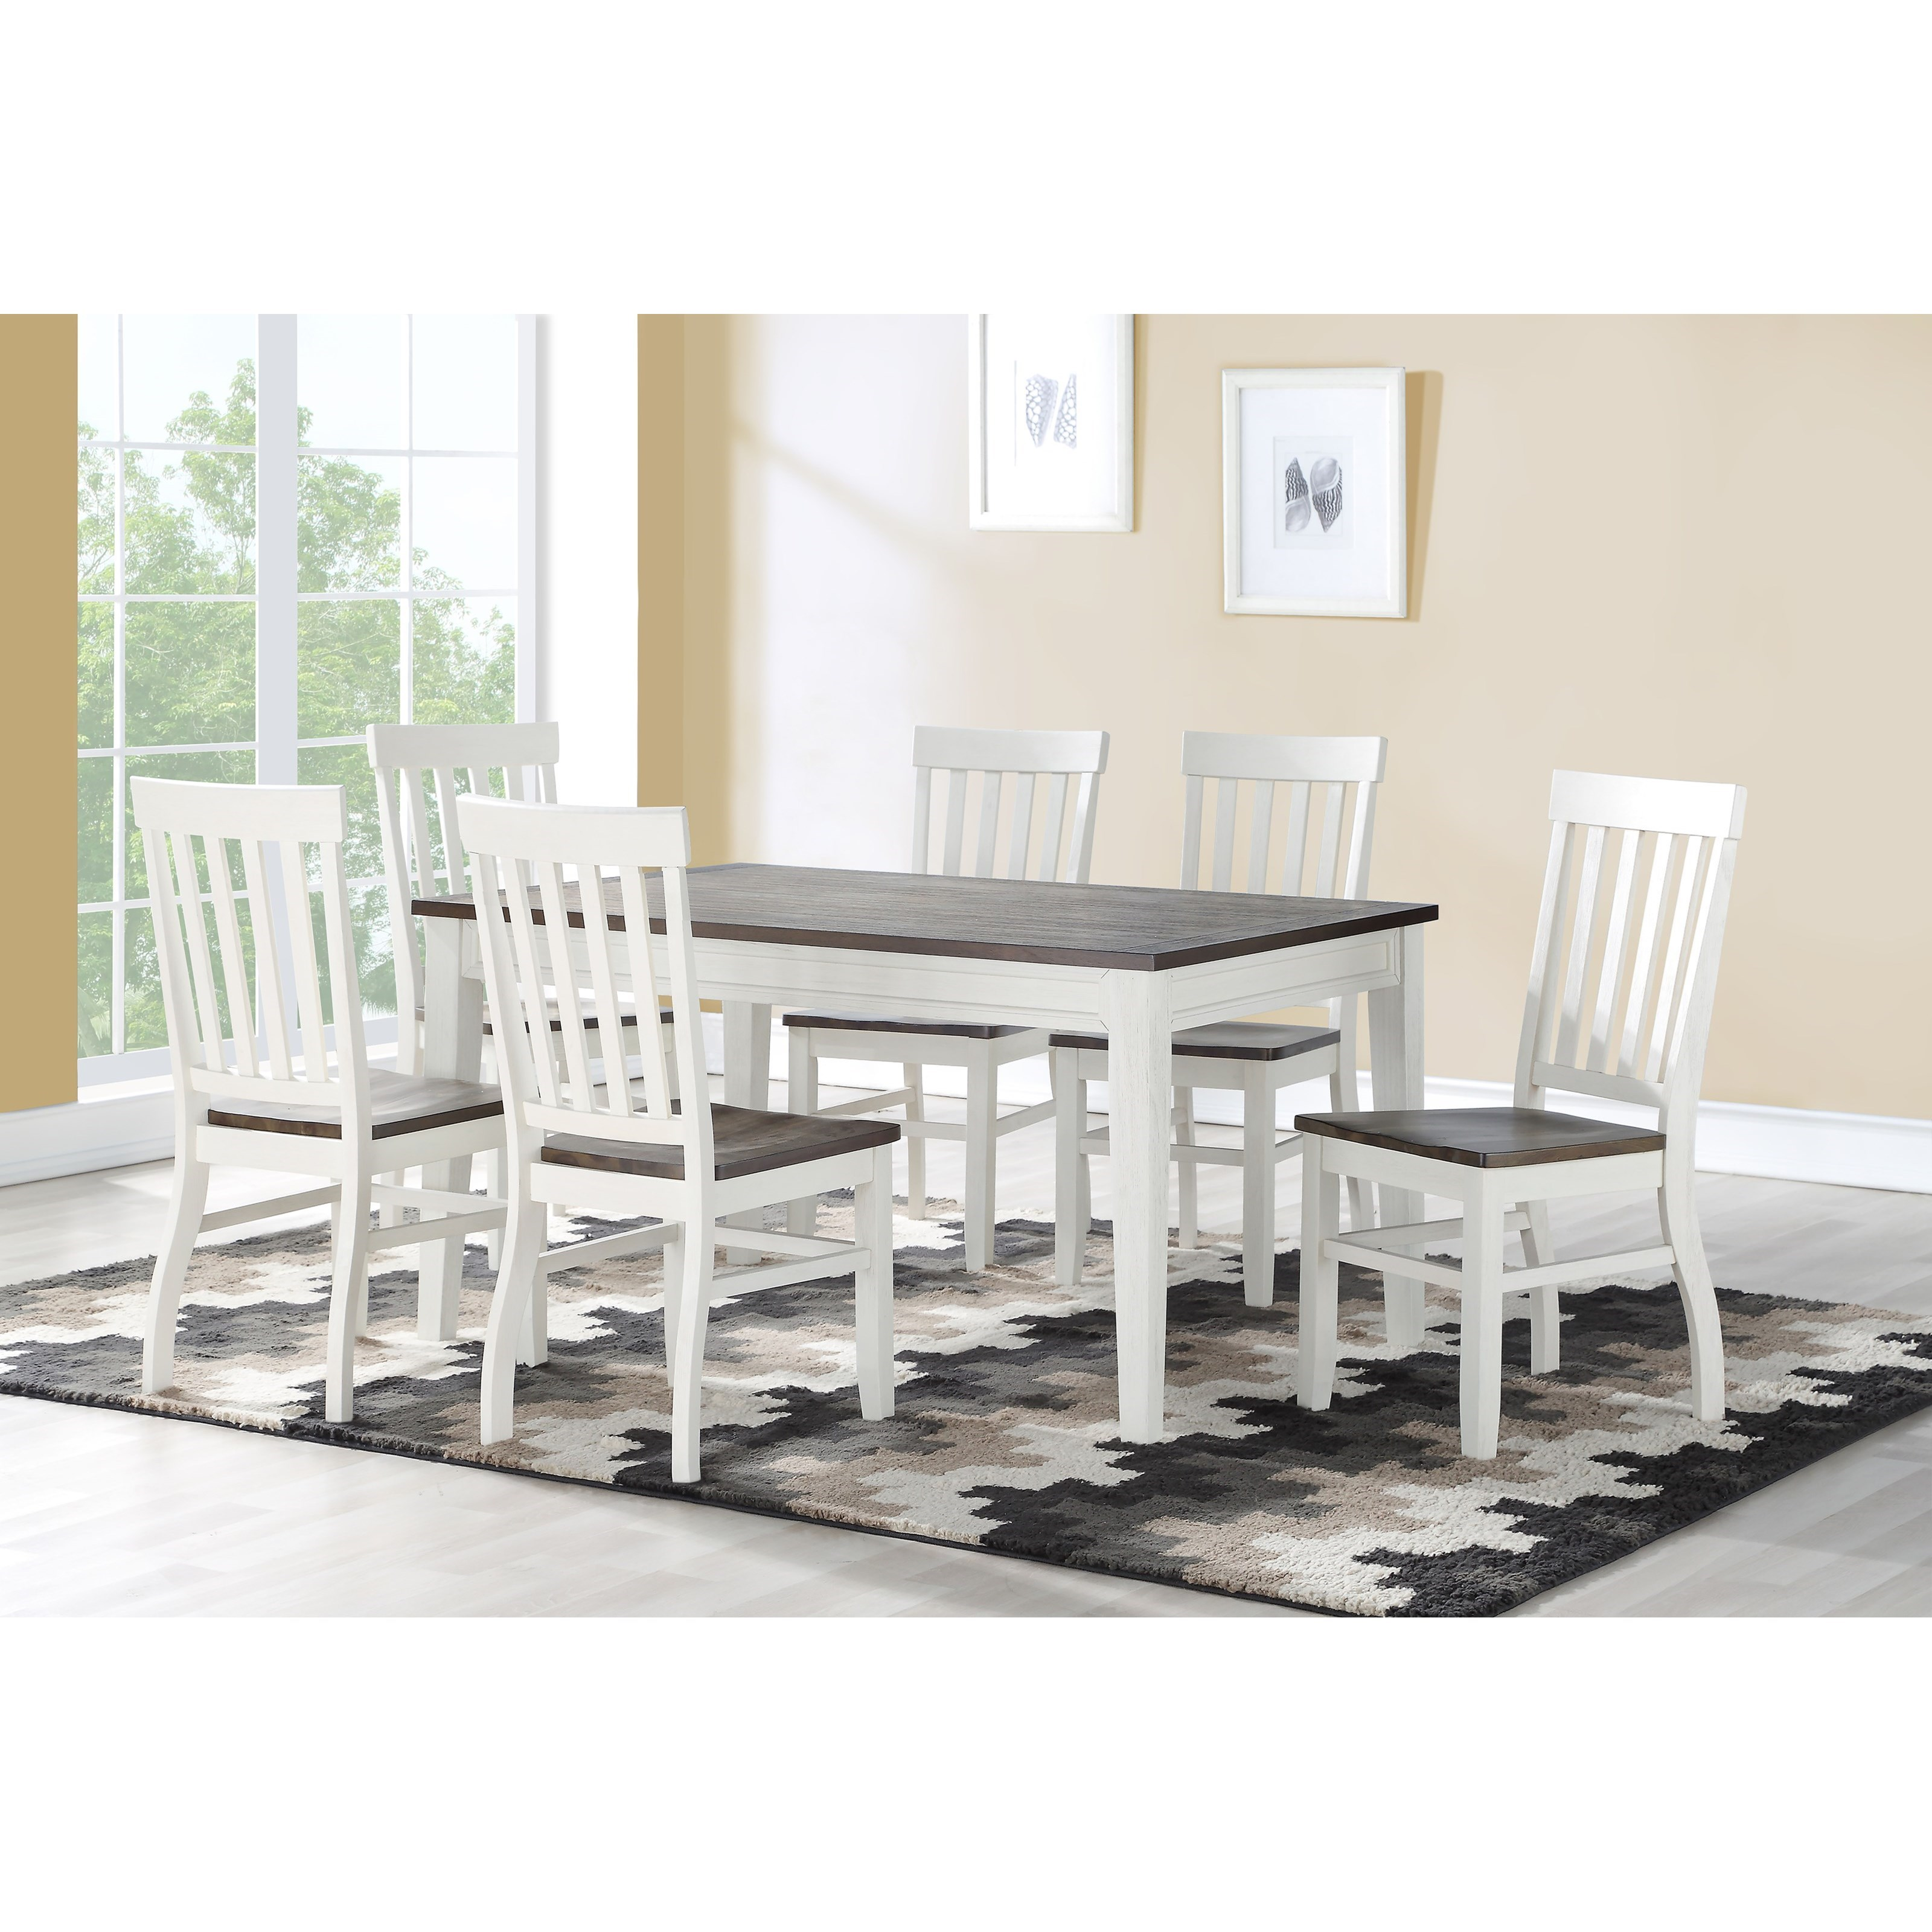 Caylie 7-Piece Dining Set by Steve Silver at Standard Furniture